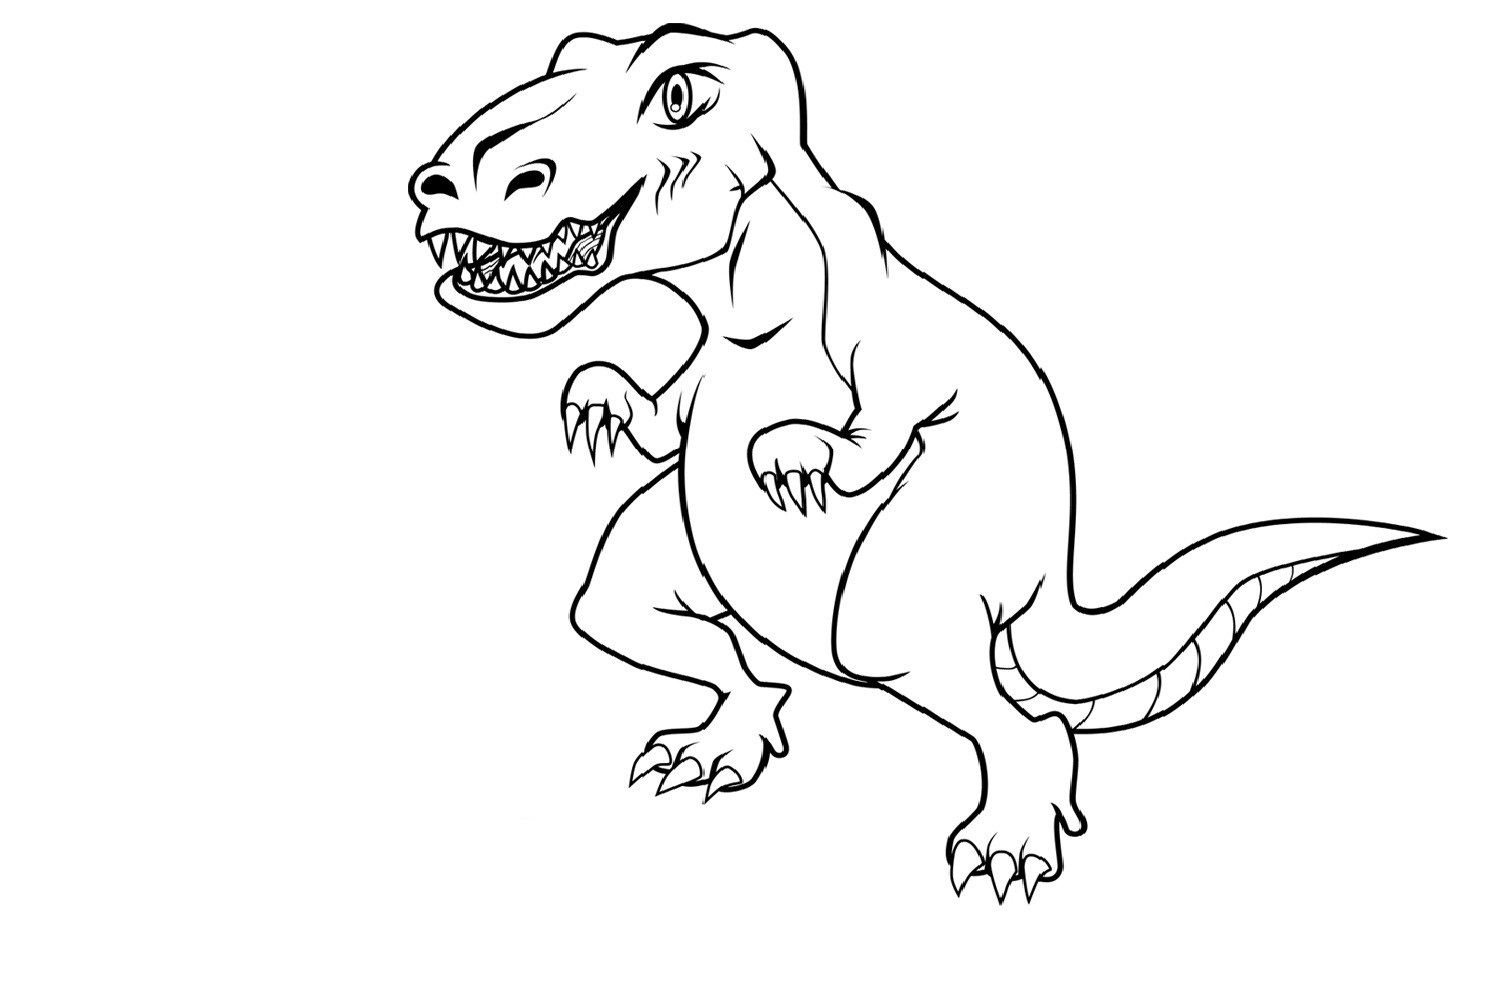 dinasaur coloring pages - photo#22